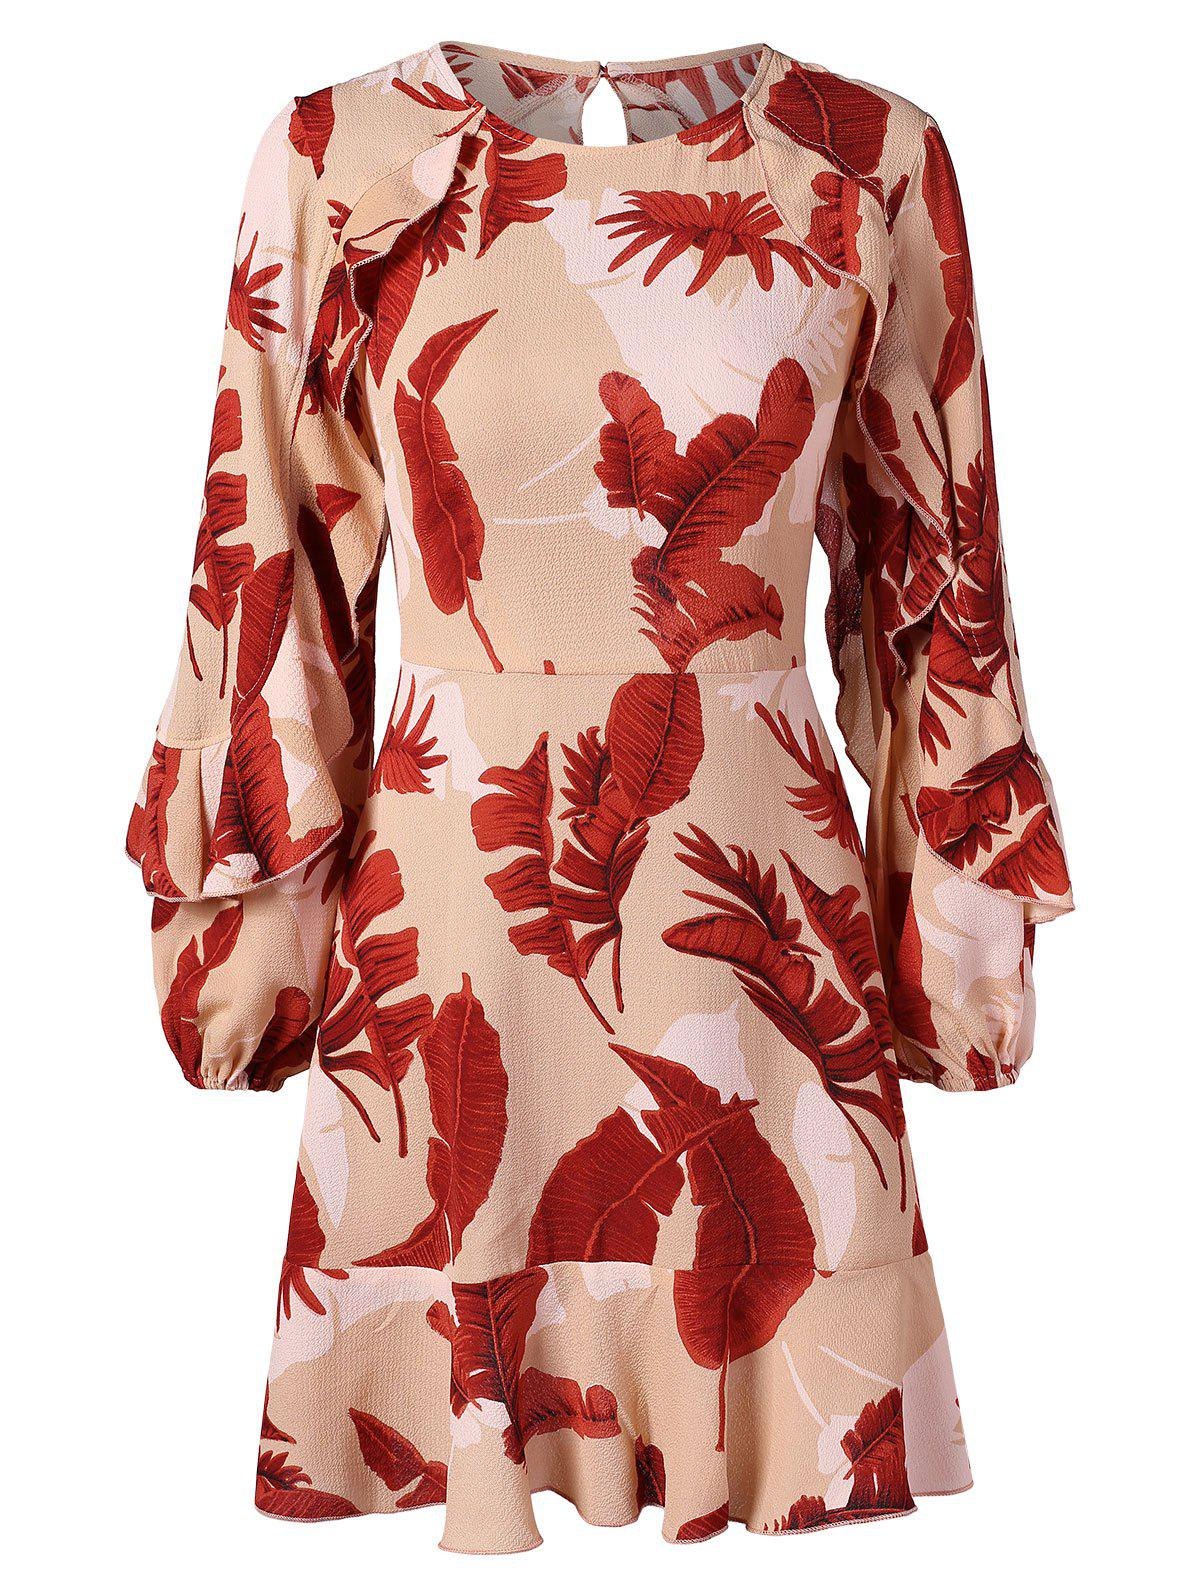 Leaf Print Cut Out Flounce Dress